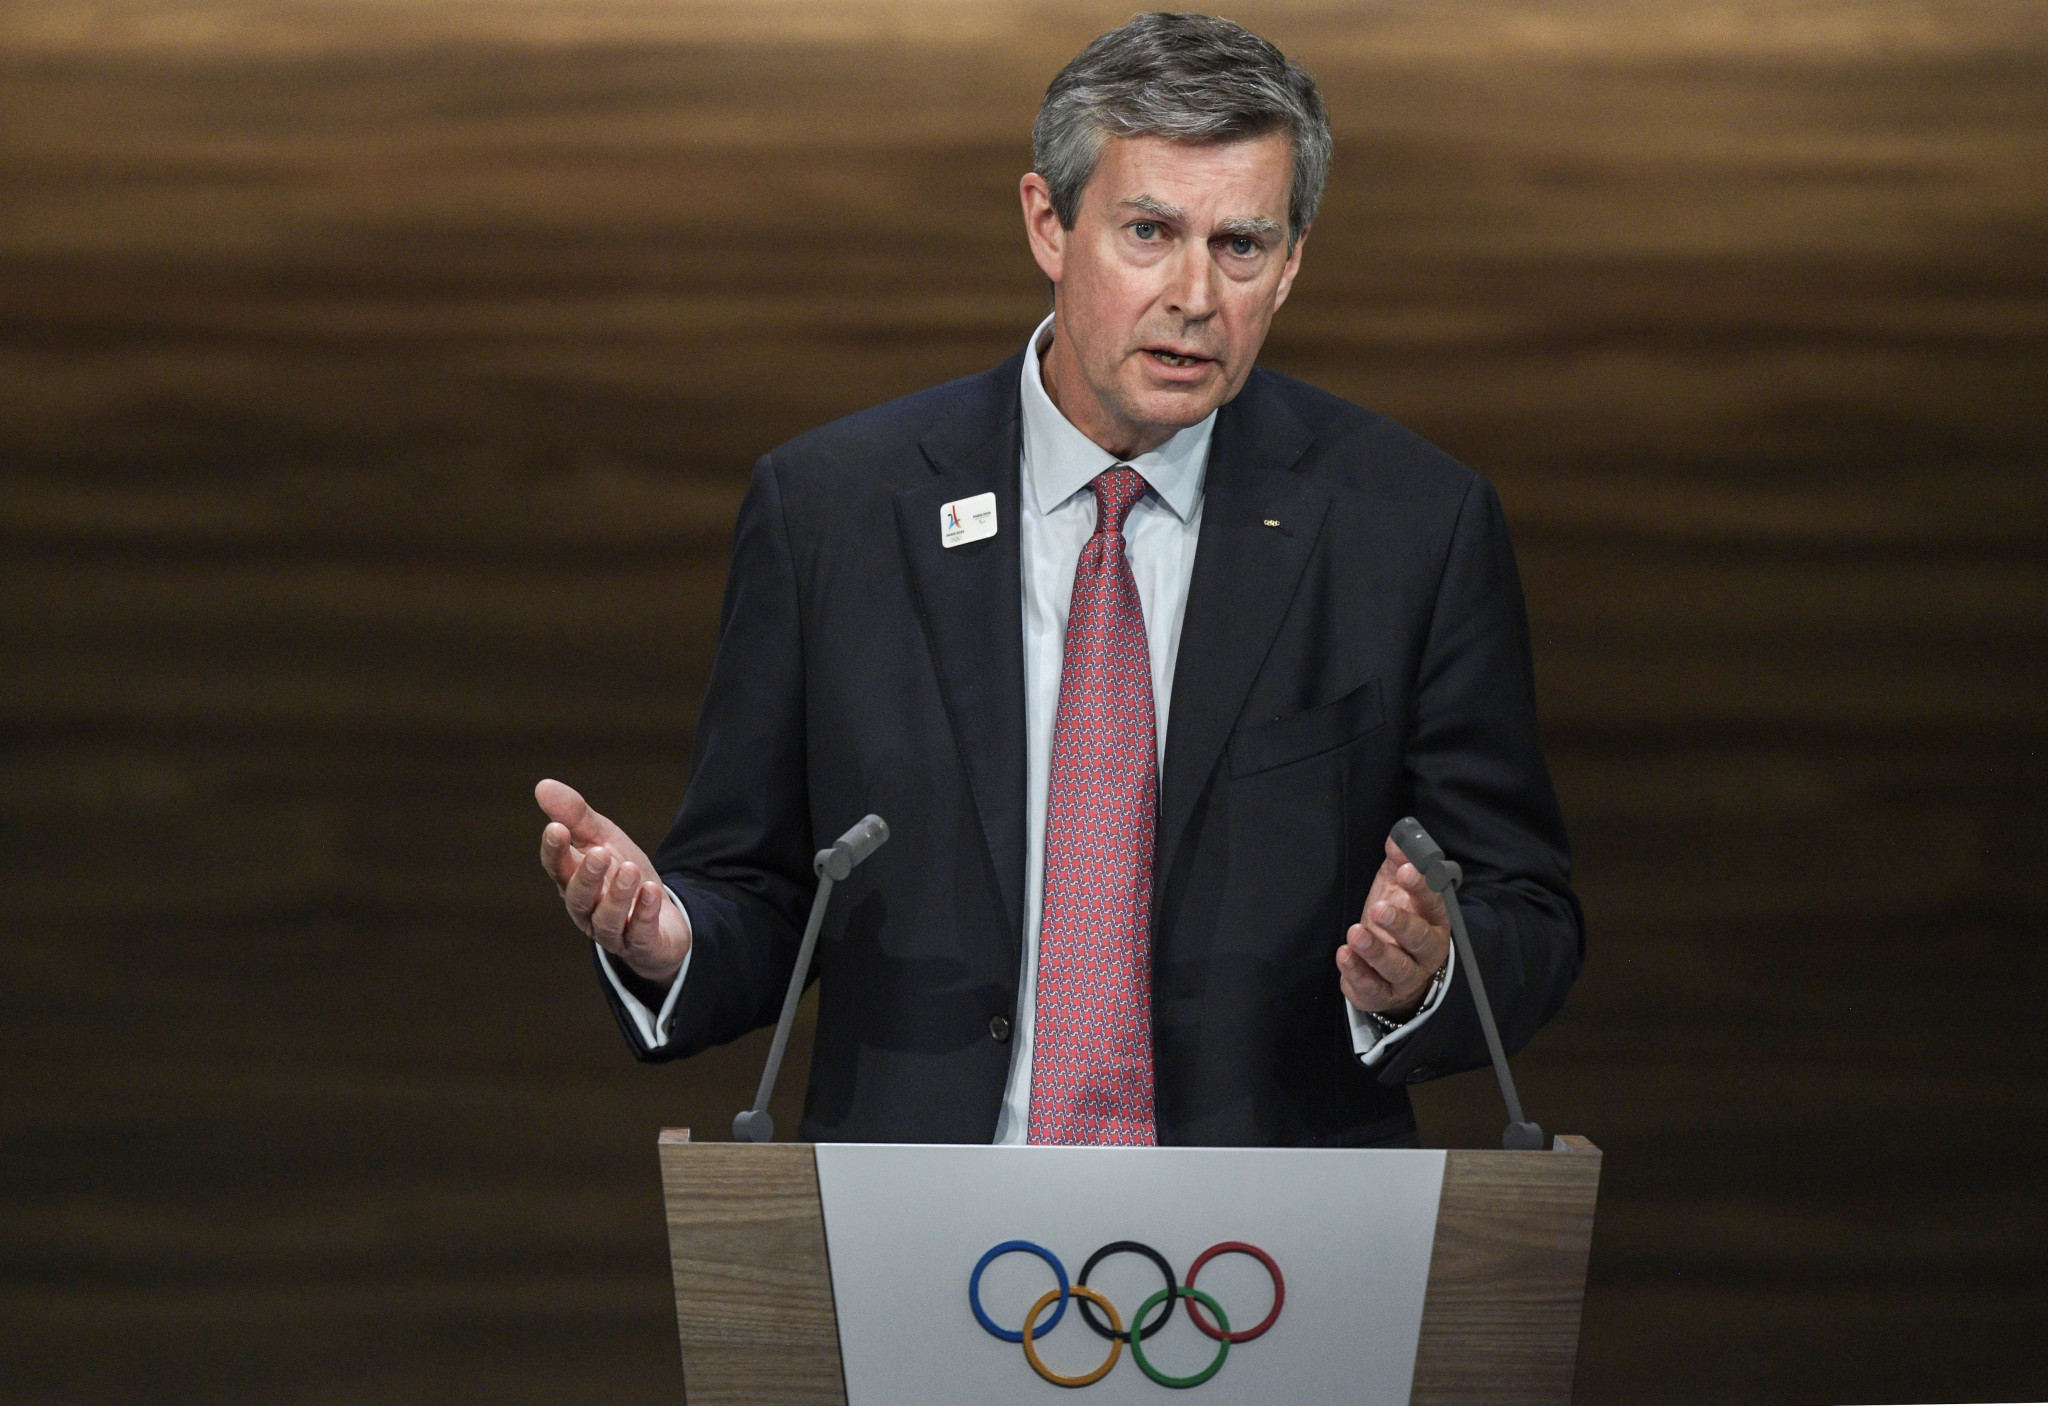 Beckers-Vieujant defends IOC decision to wait on future of Tokyo 2020